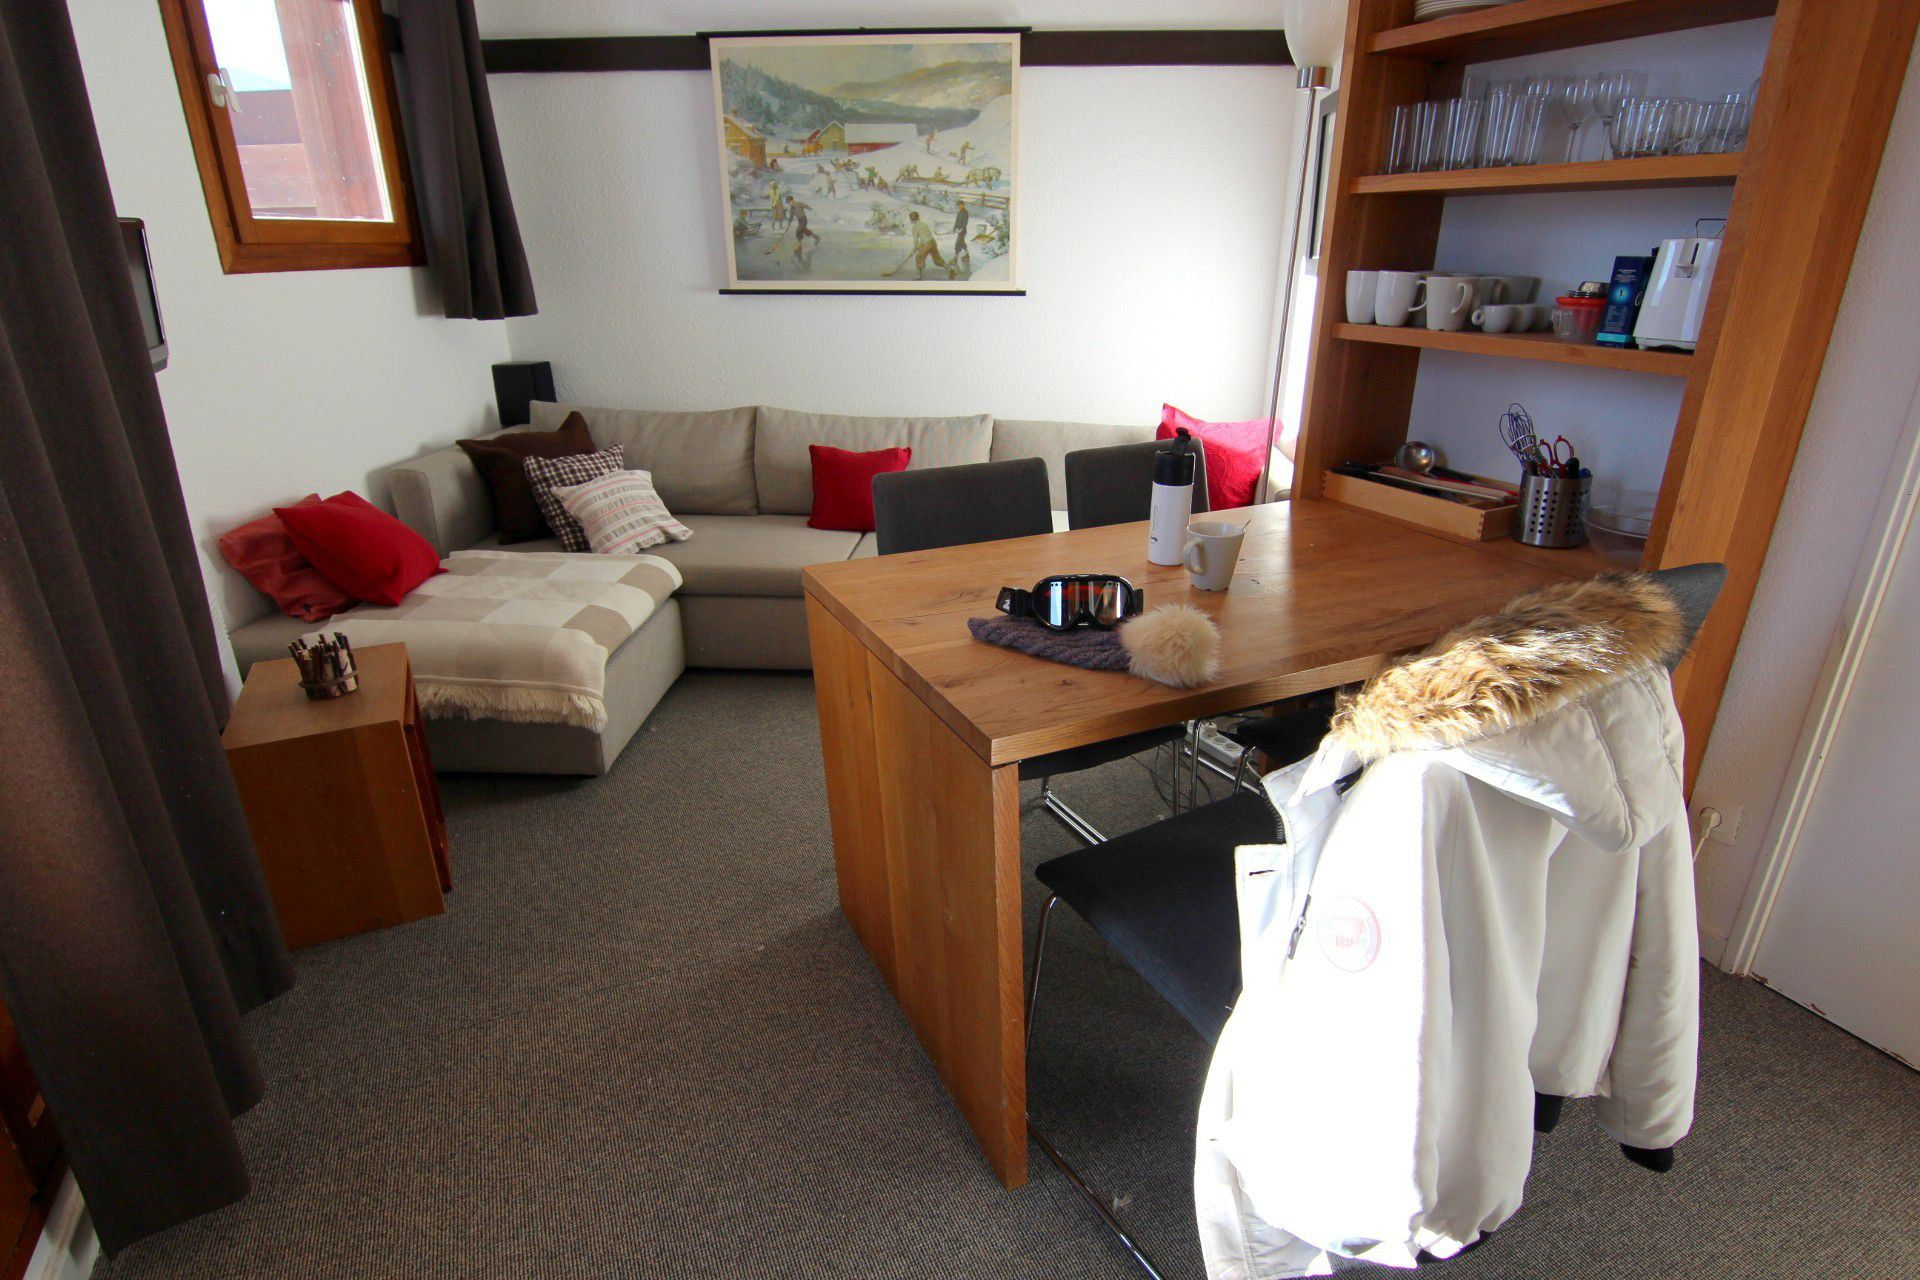 REINE BLANCHE 23 / 2 ROOMS 4 PEOPLE GRAND COMFORT